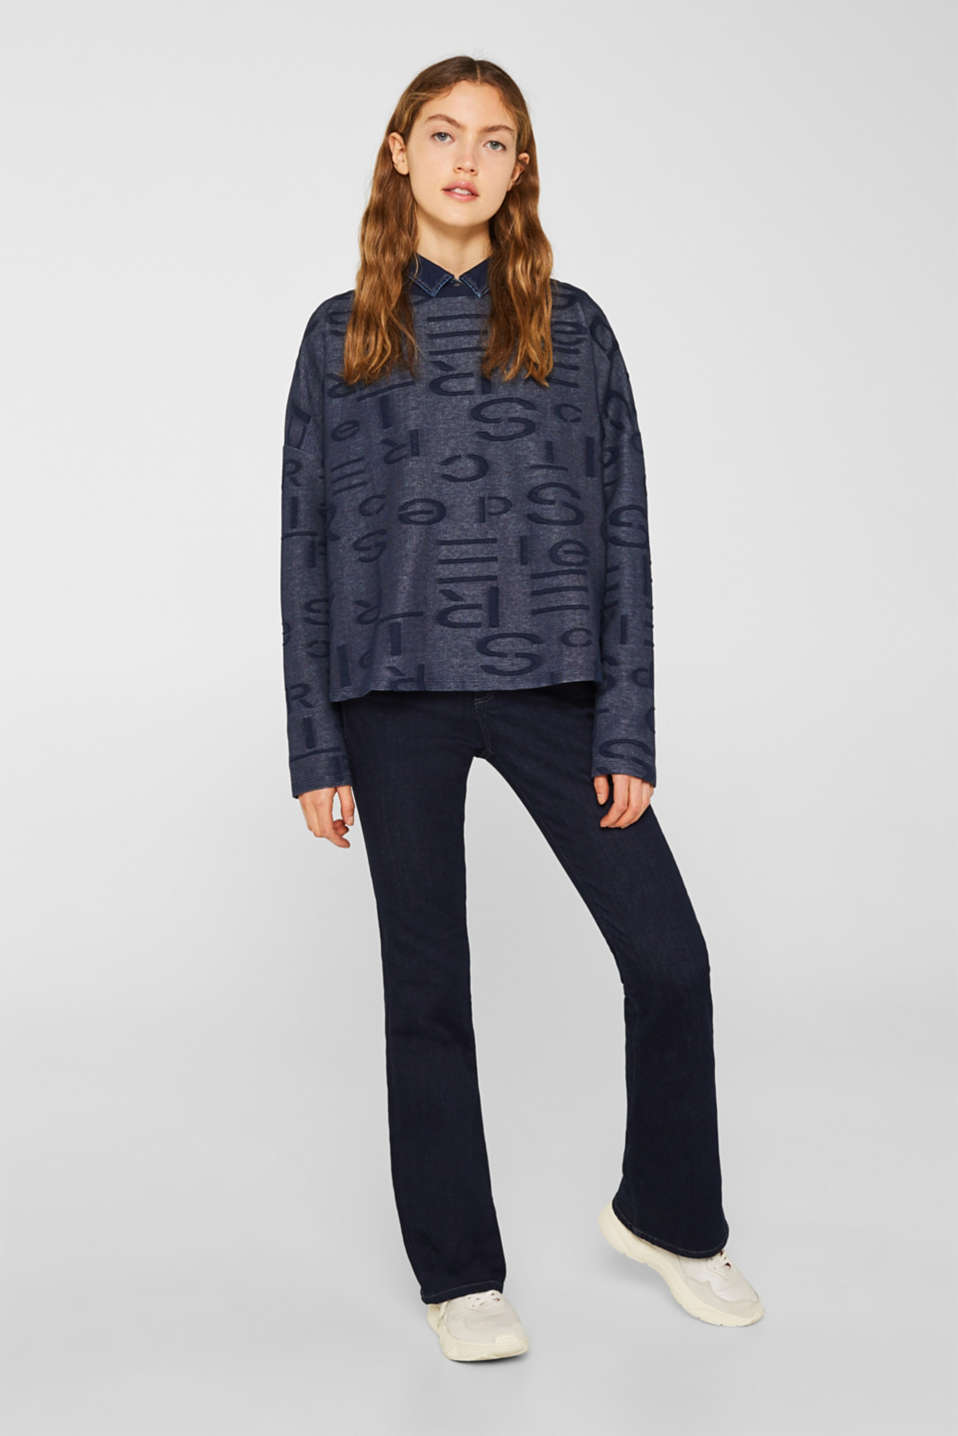 Sweatshirt with a logo jacquard pattern, NAVY, detail